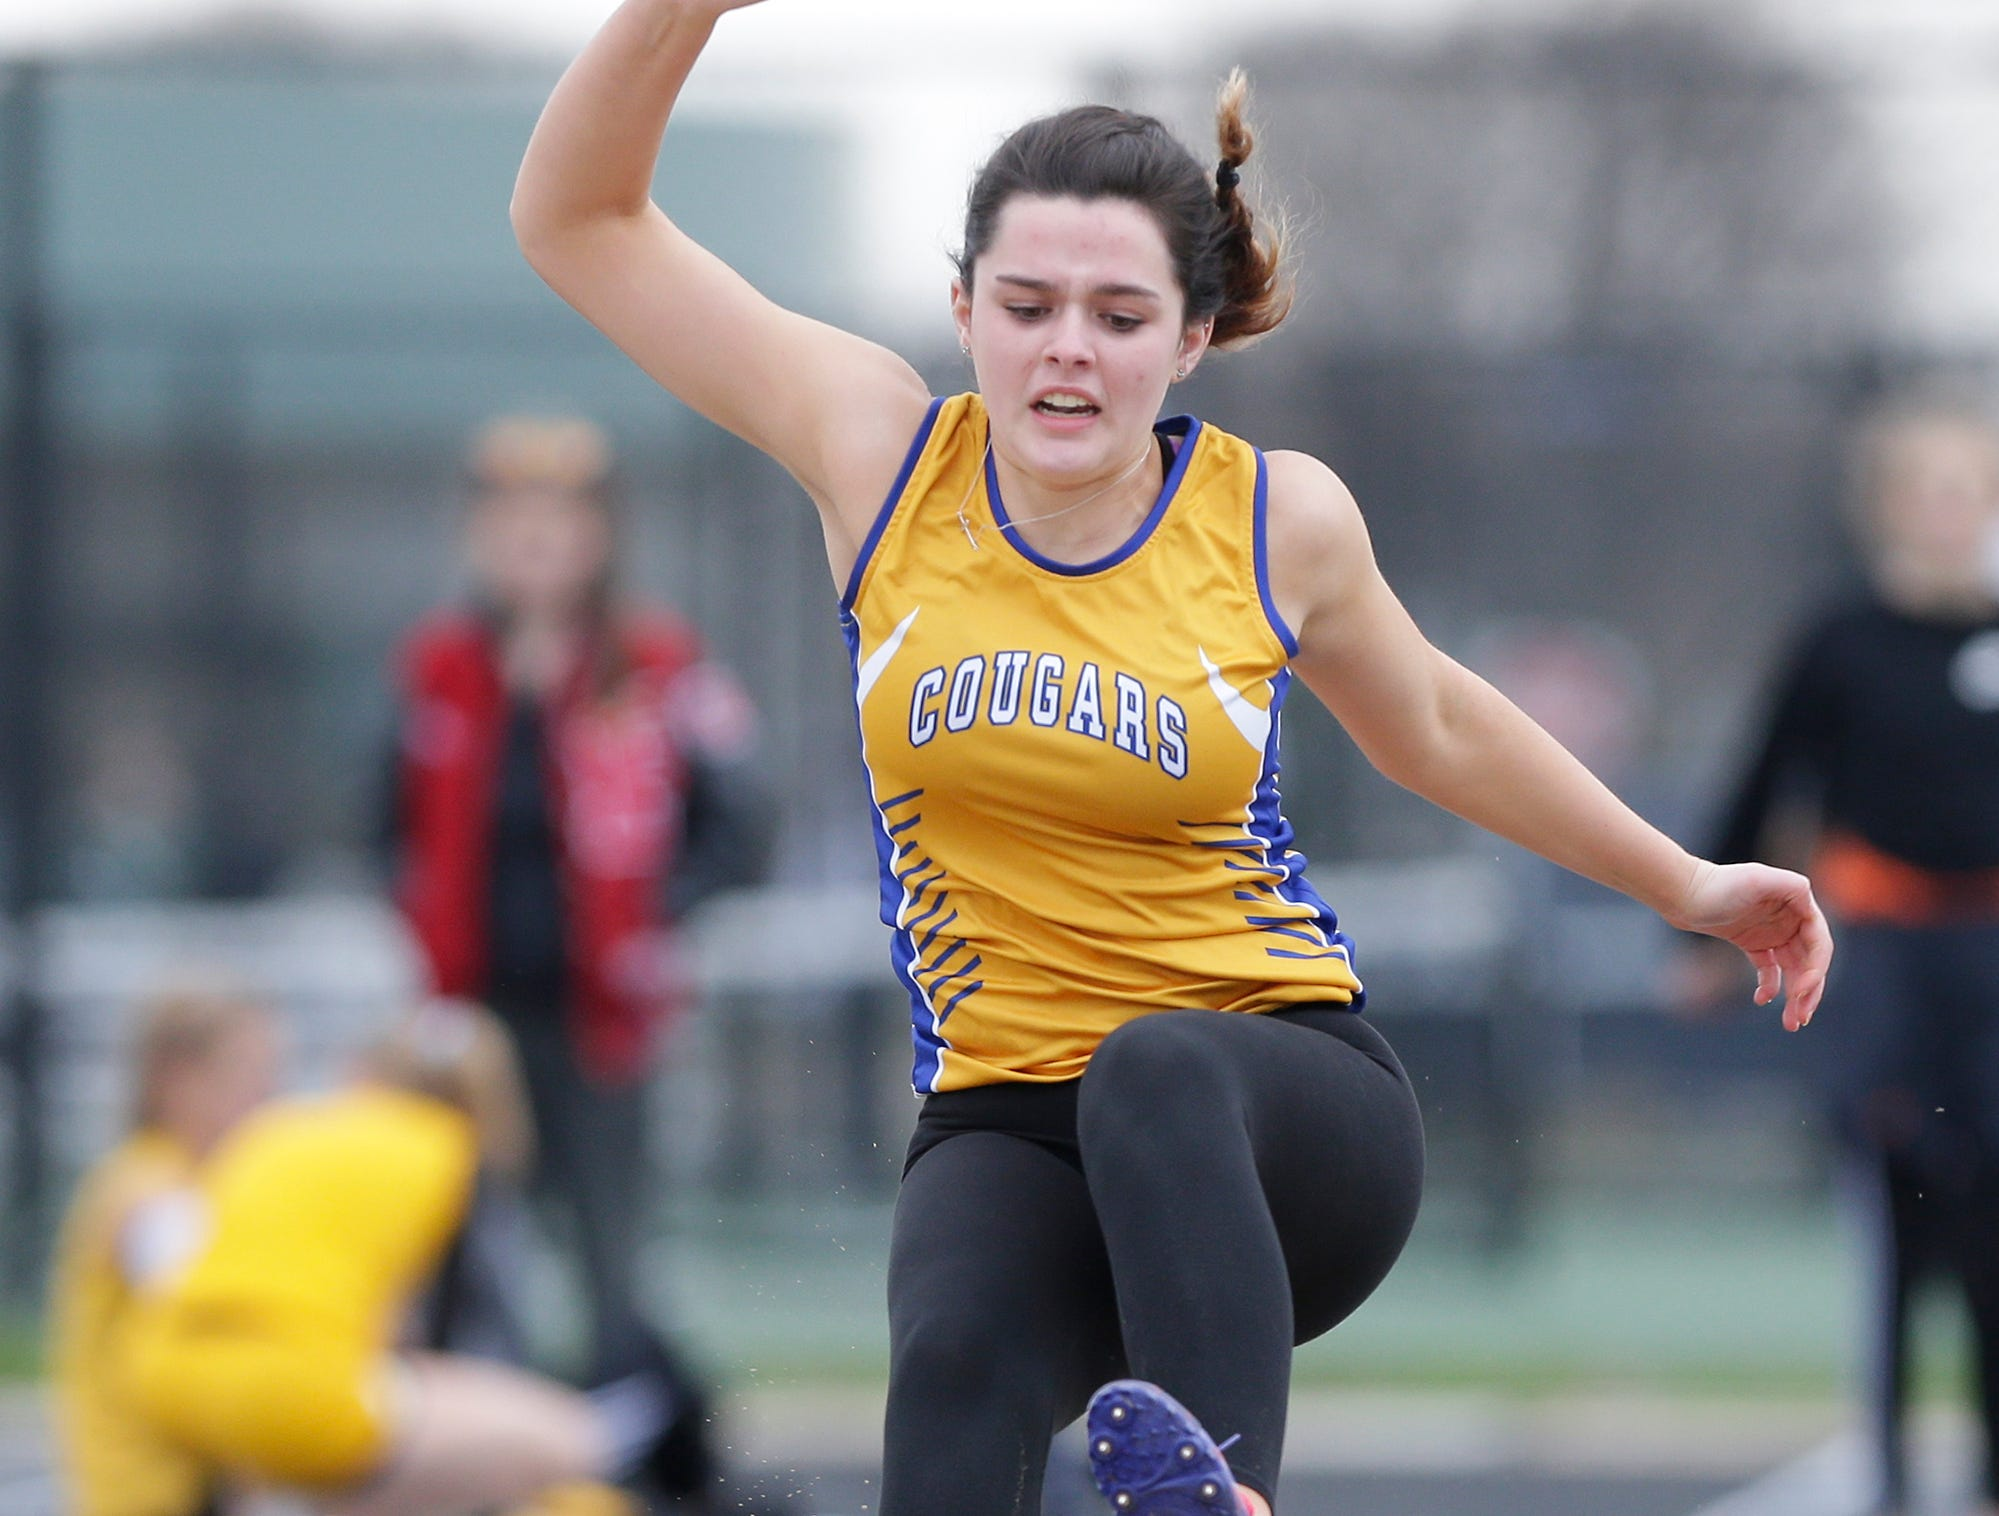 Amber Thompson of Campbellsport High School competes in the long jump Friday, May 3, 2019 at the Waupun High School Invitational track and field meet. Doug Raflik/USA TODAY NETWORK-Wisconsin